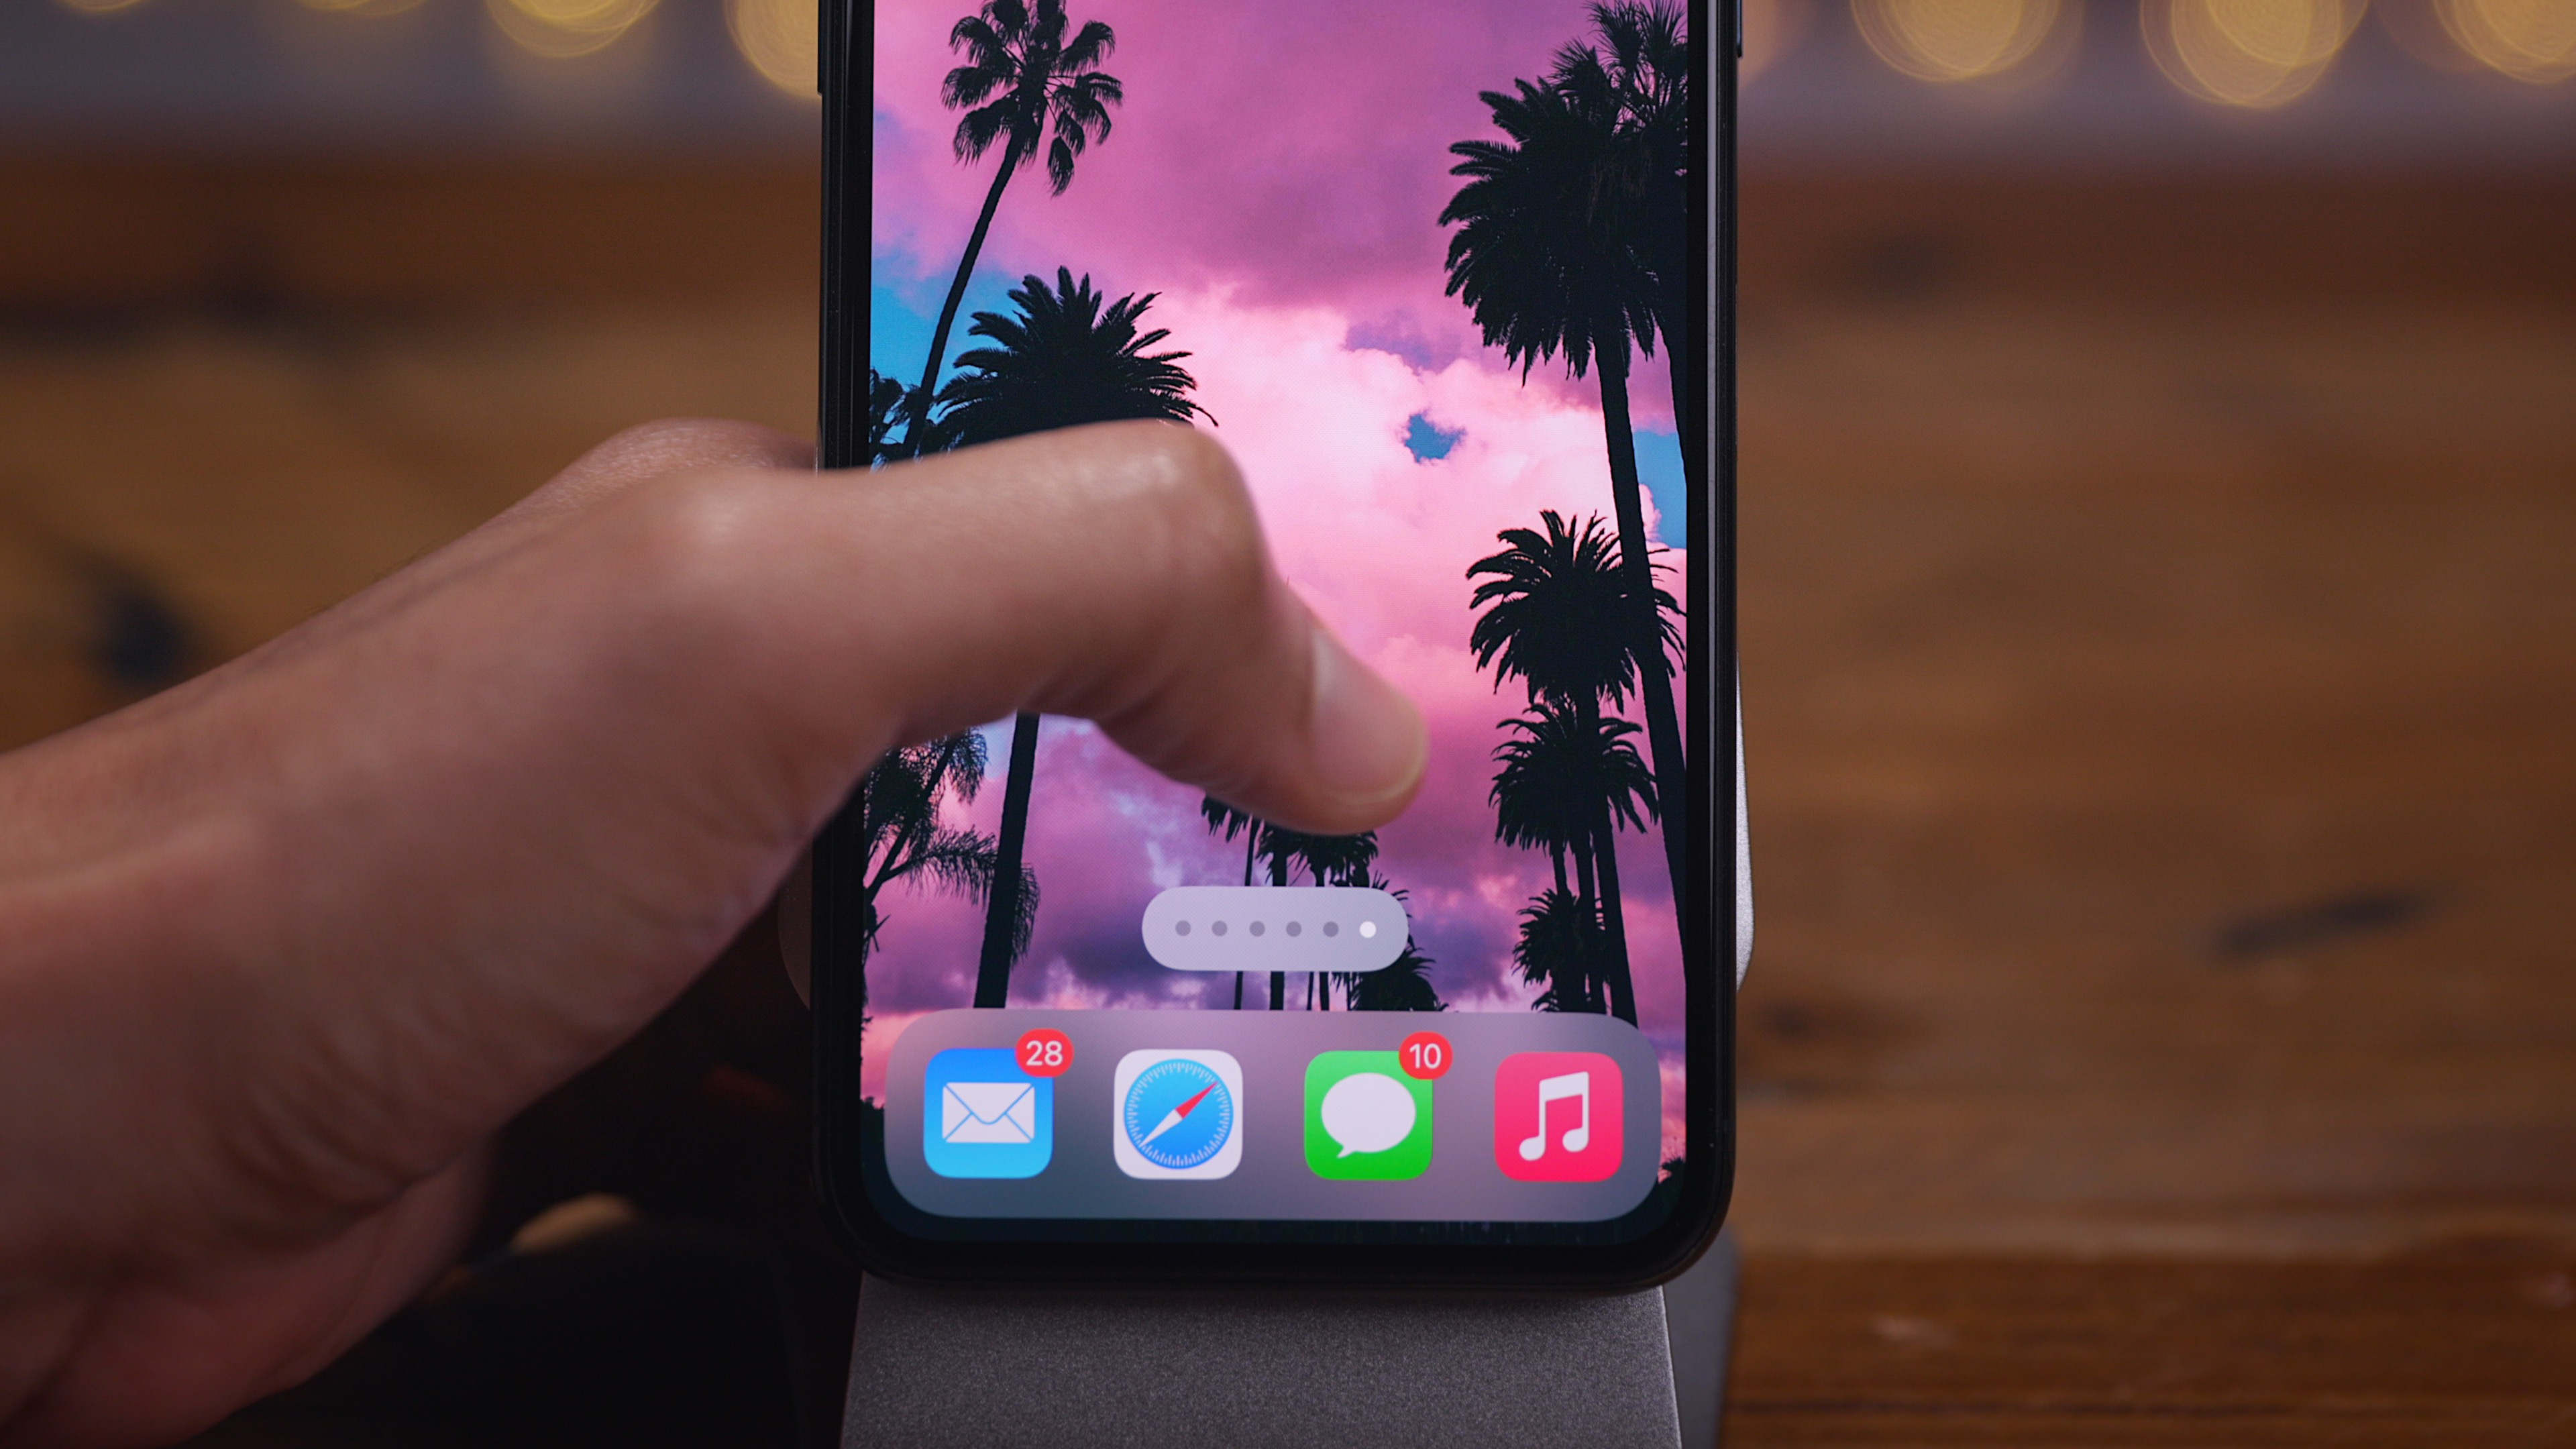 Ios 14 home screen tips and tricks quickly cycle through apps